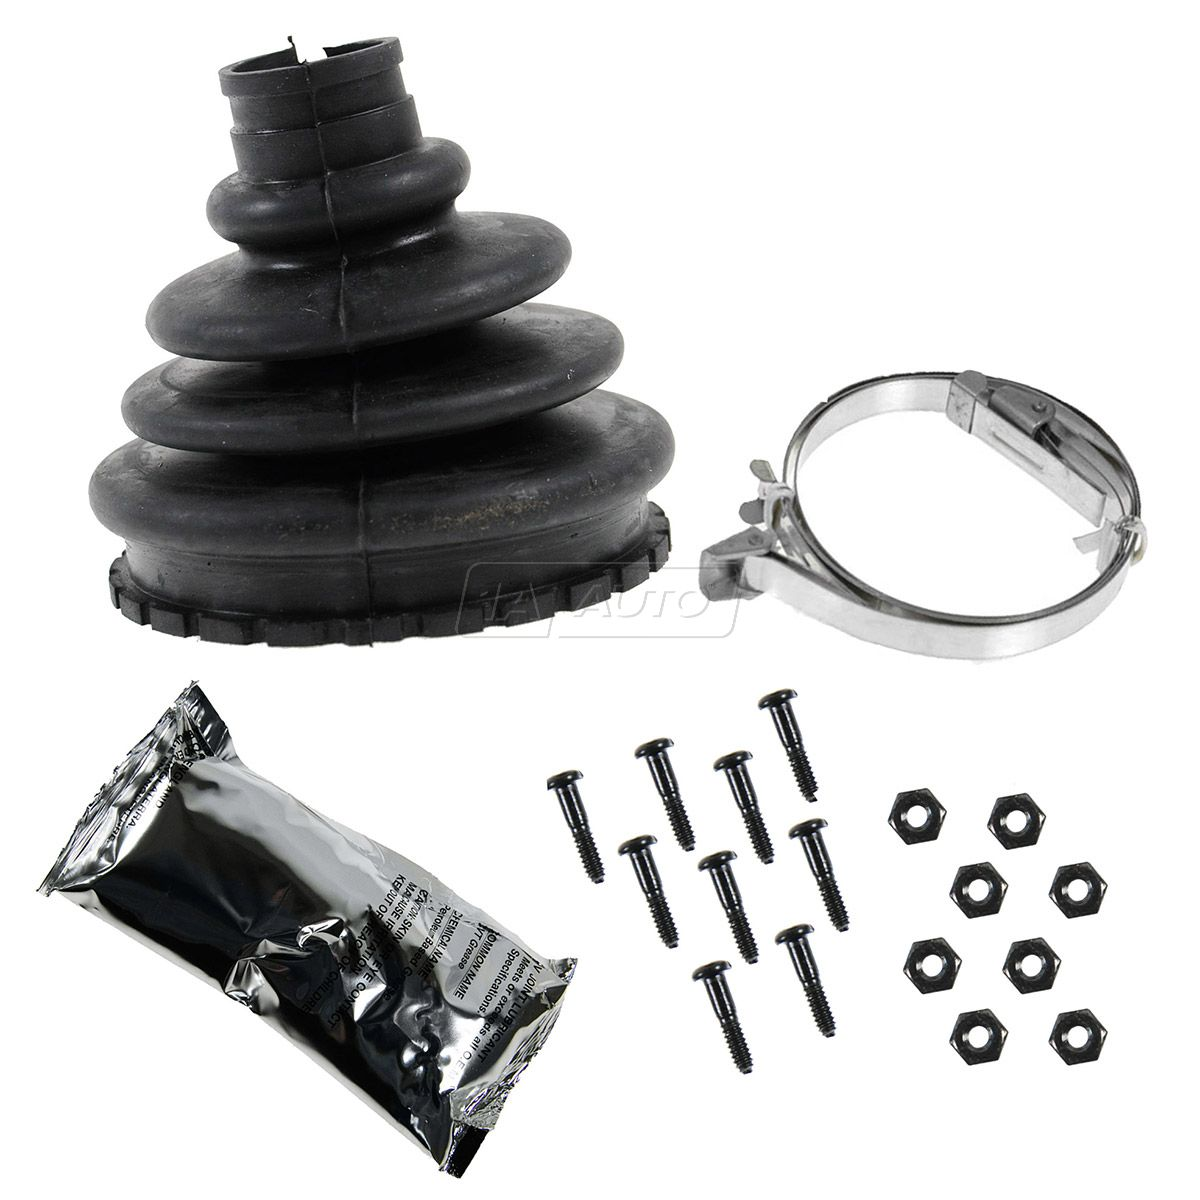 outer cv joint speedi split boot repair kit for chevy gmc